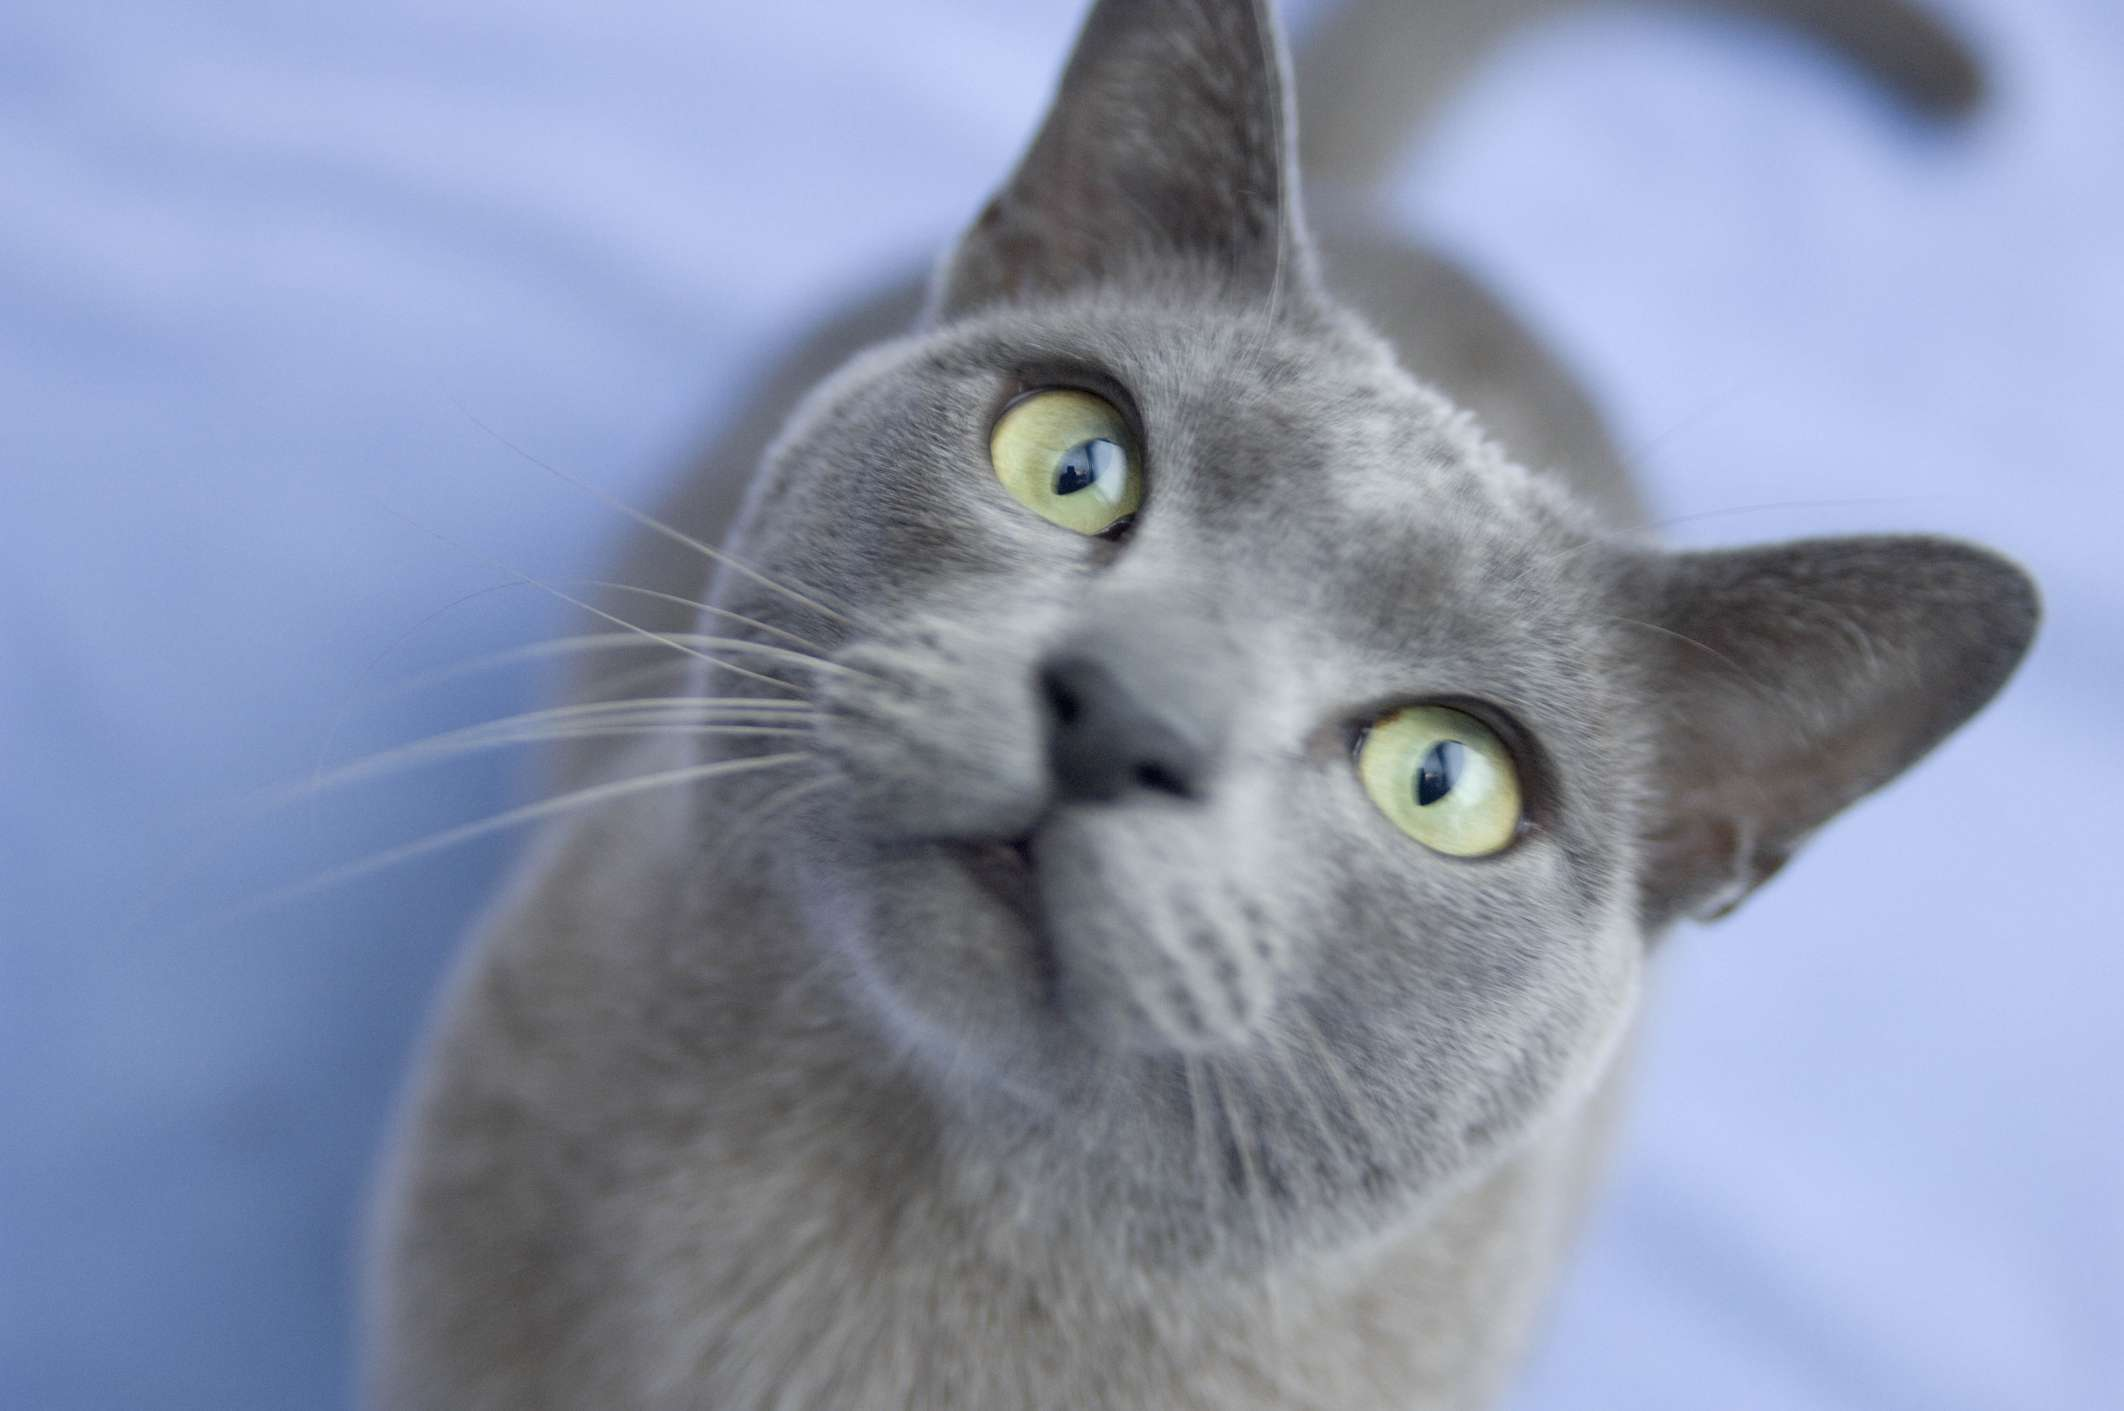 A Burmese cat looking into the camera.